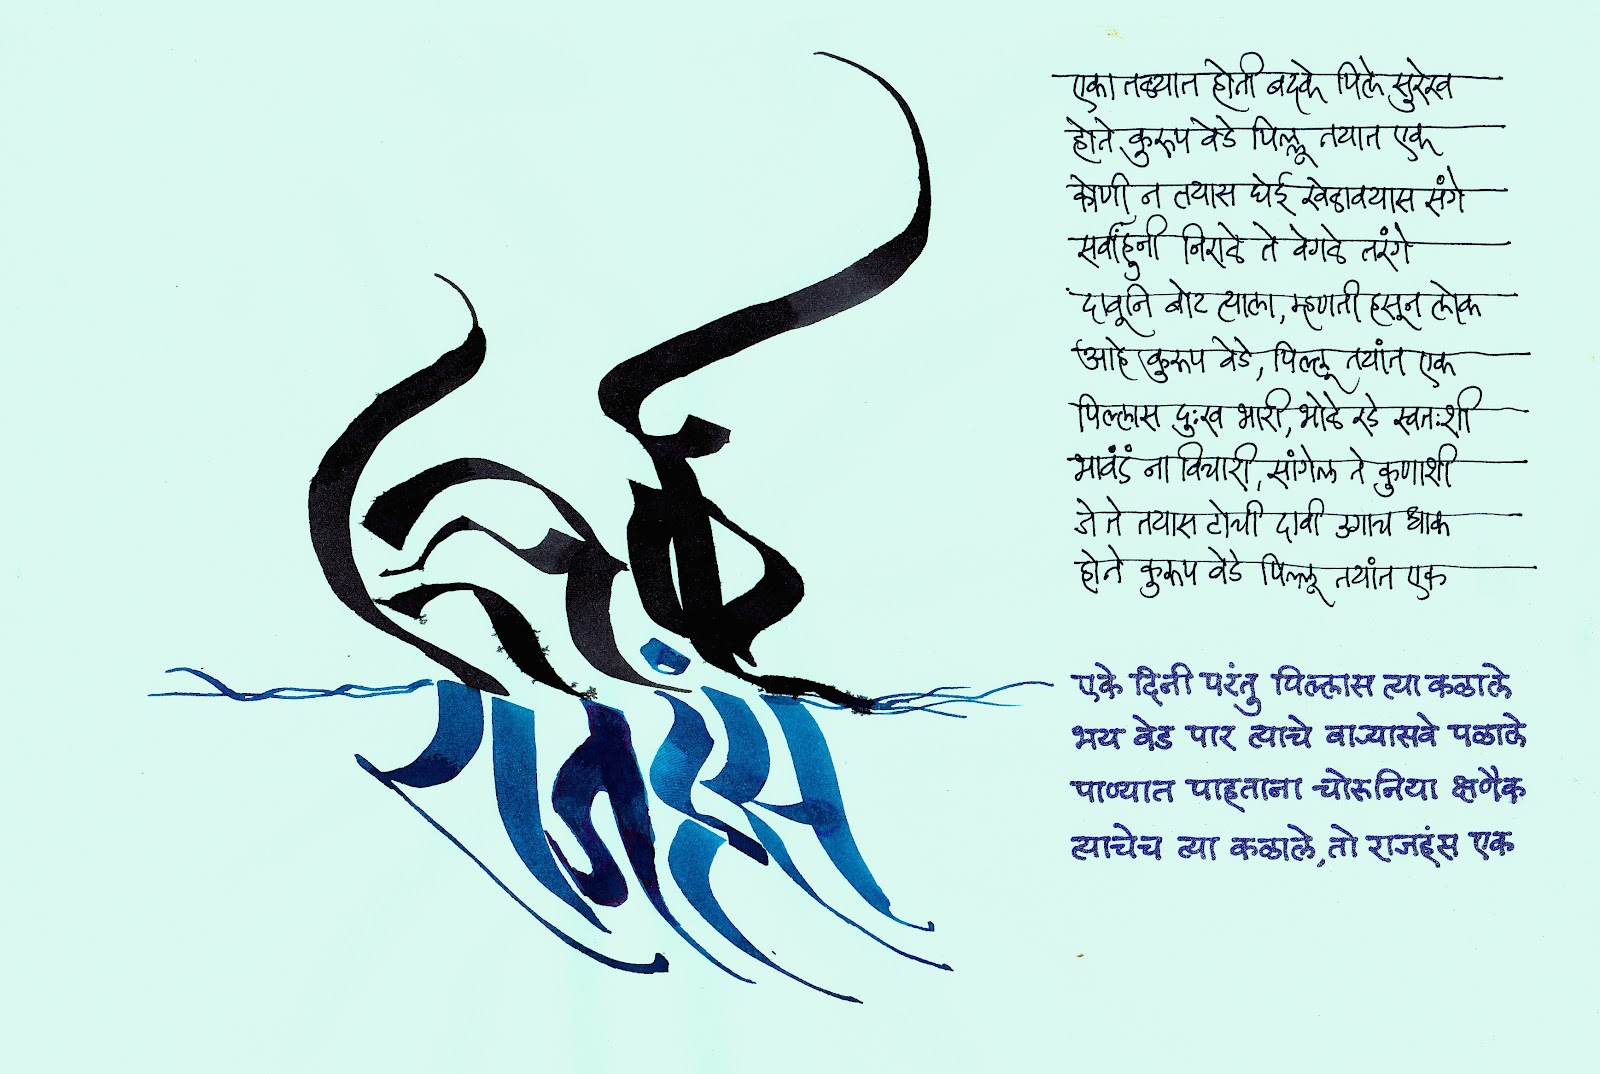 Calligraphic expressions by b g limaye